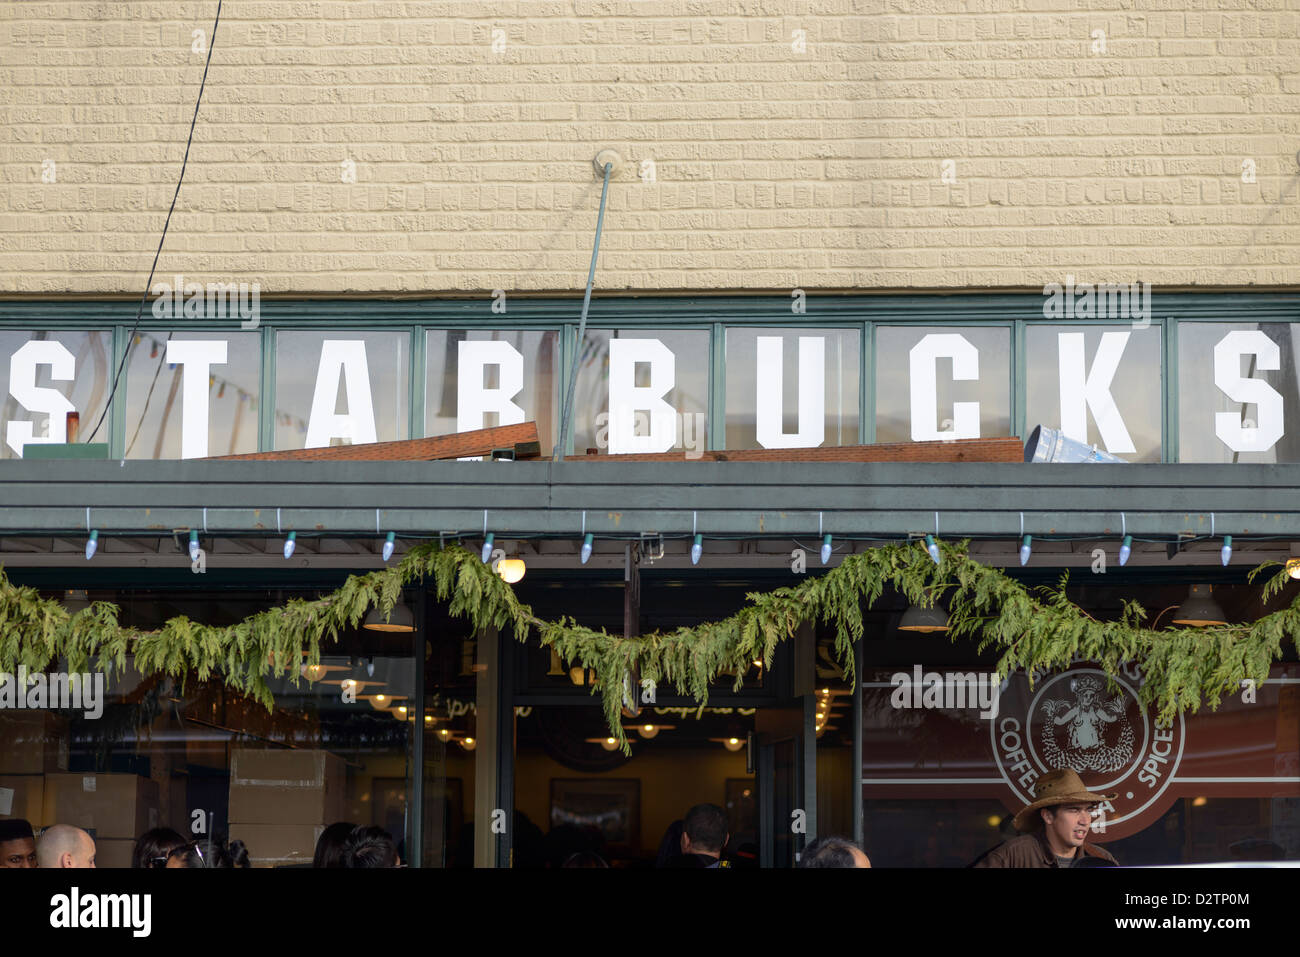 First ever Starbucks, Seattle, USA - Stock Image